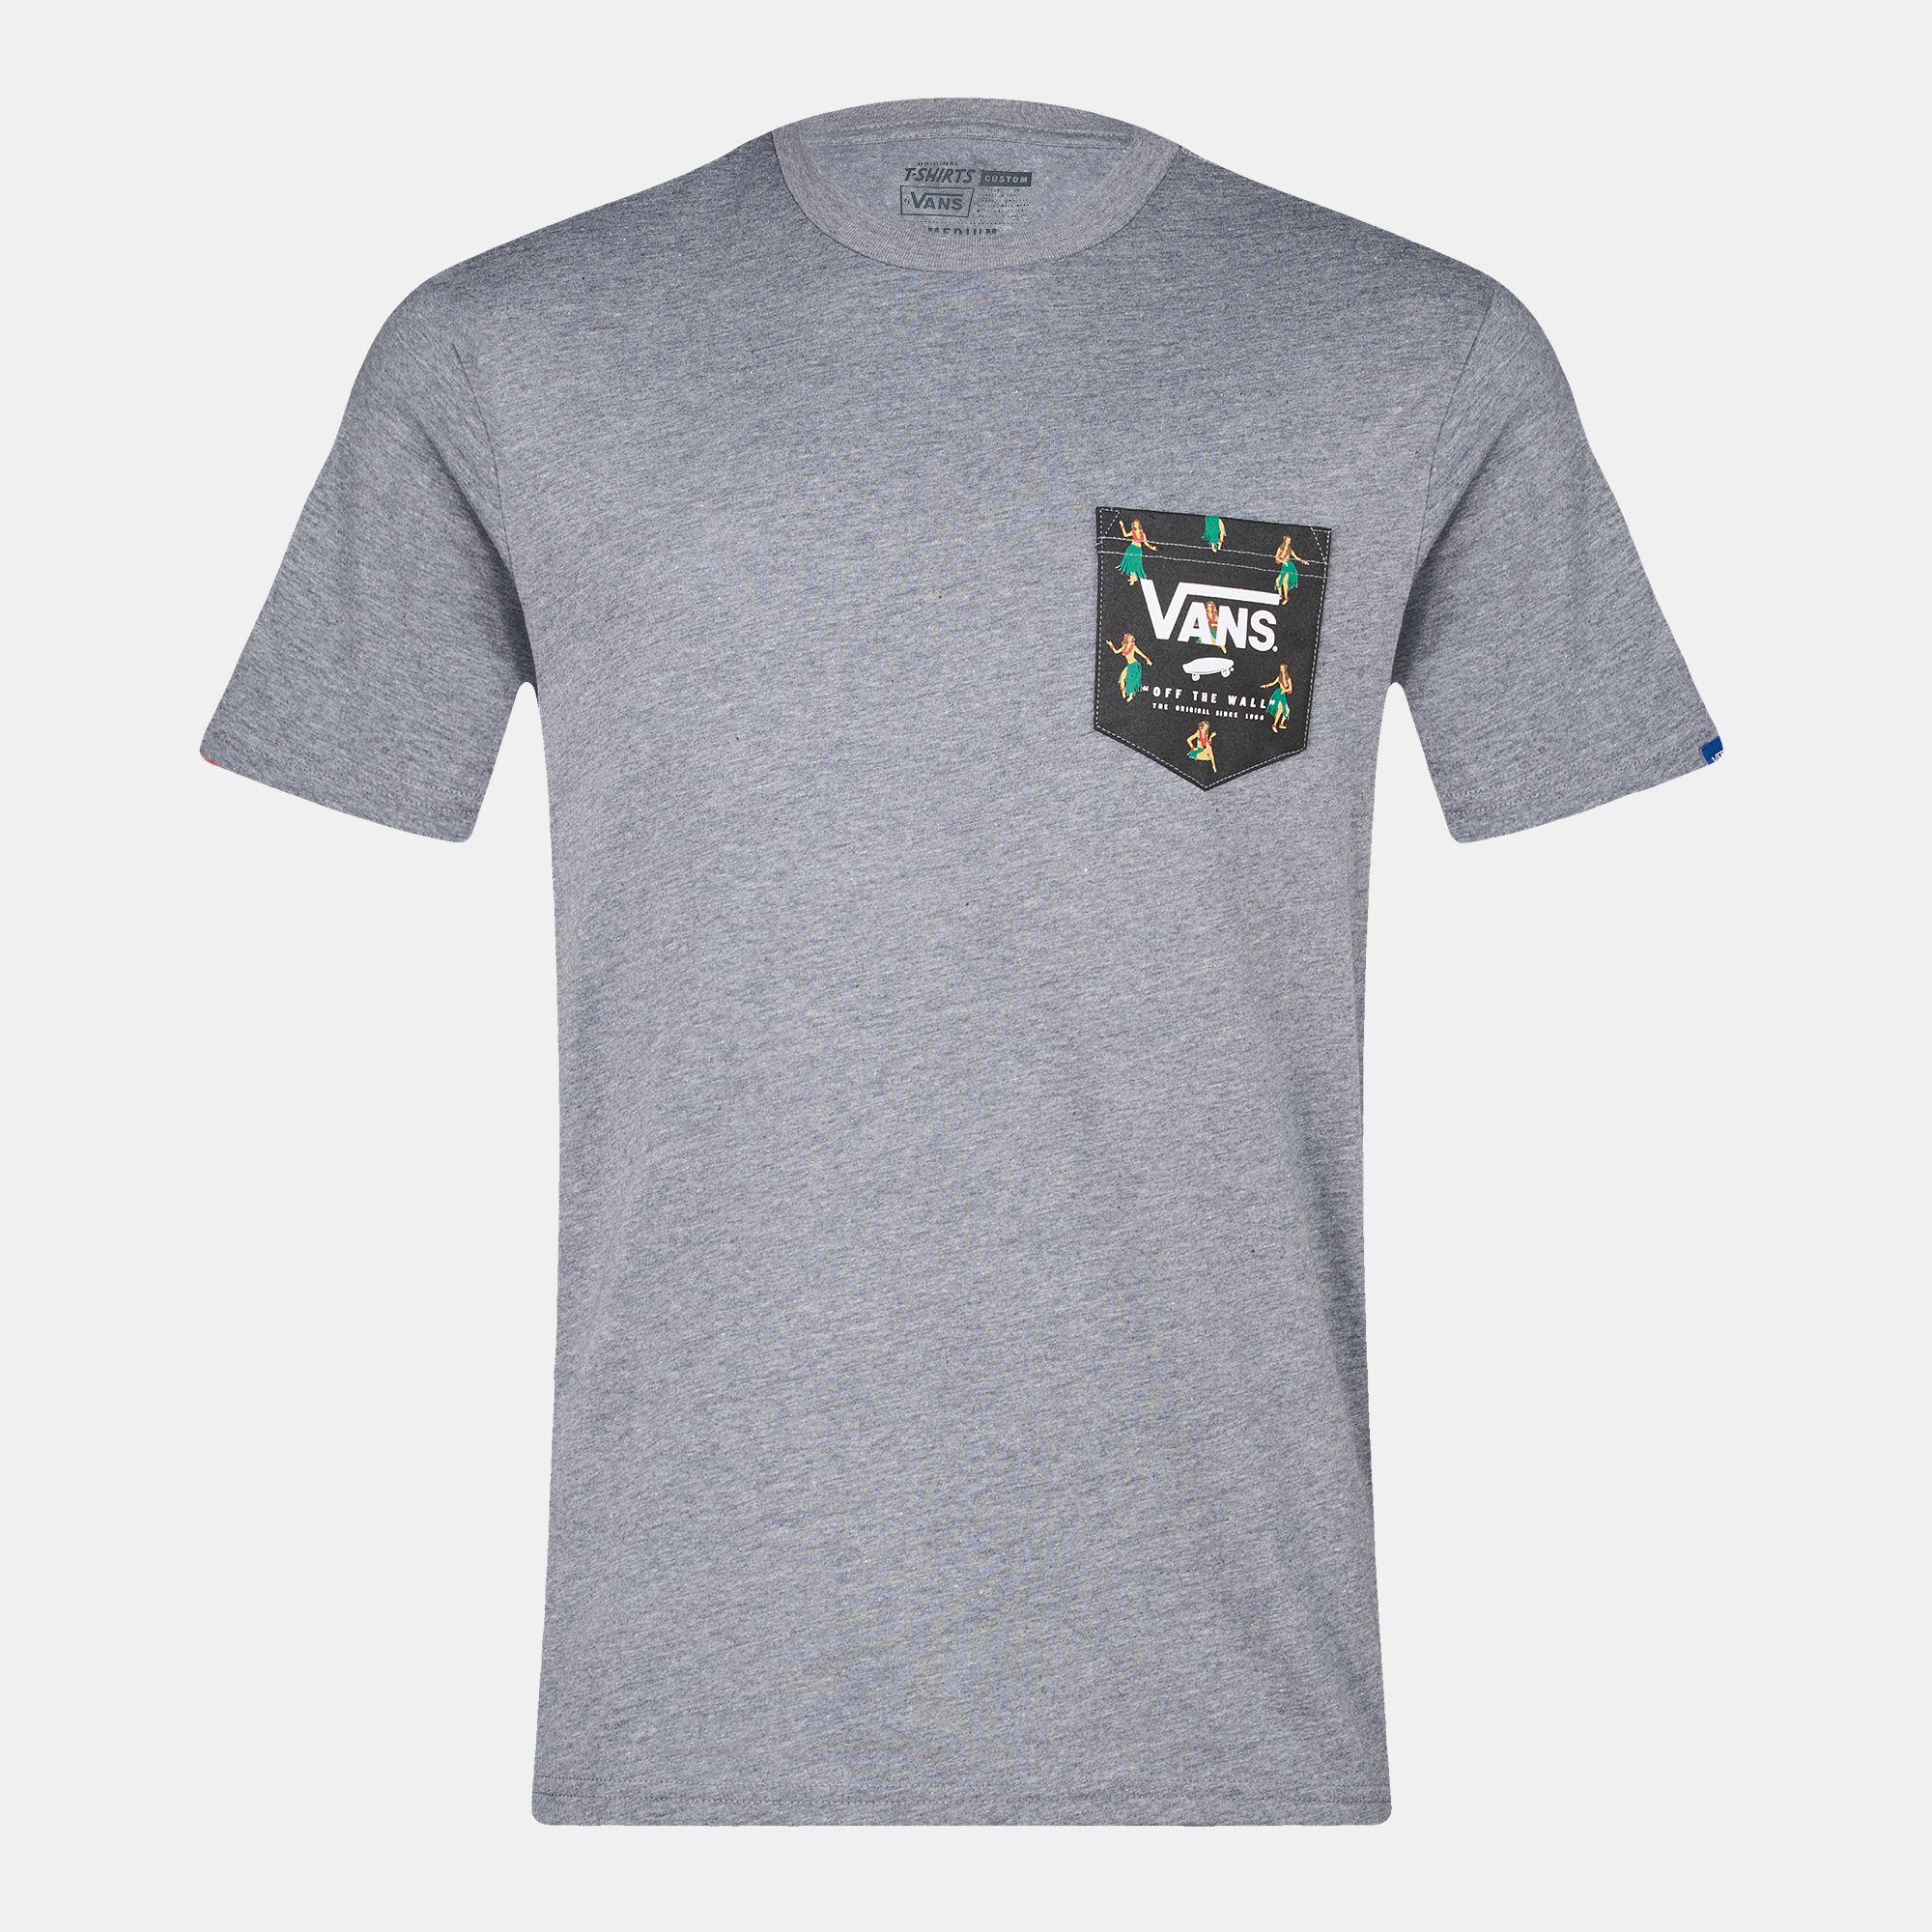 b5b0cfe75a0cb0 Shop Grey Vans Print Box Pocket T-Shirt for Mens by Vans